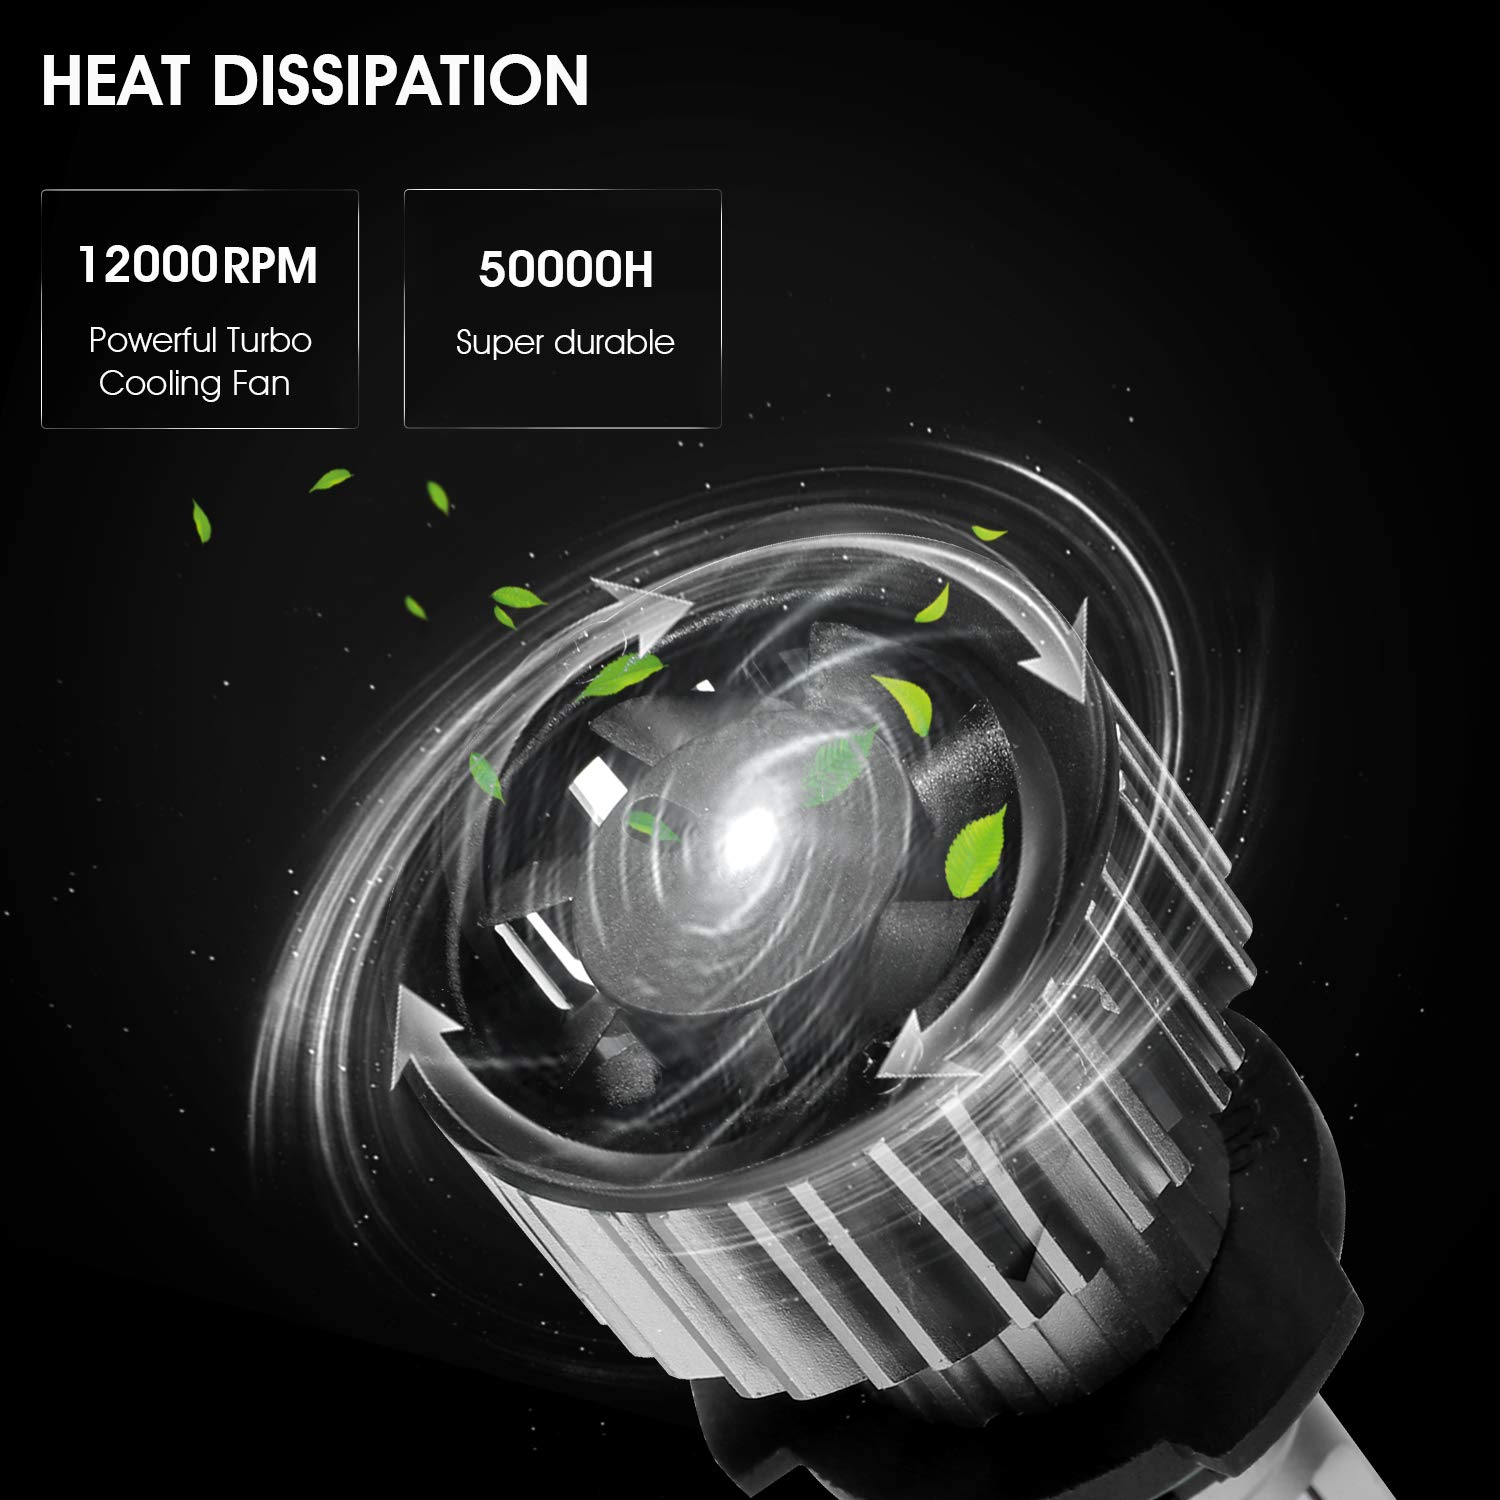 Pack of 2 Super Clear 8000Lm 6000K Cool White with Heat Dissipation System 9006//HB4 LED Headlight Bulbs SUAOKI All-in-One Conversion Kit Waterproof IP68 for High//Low Beam 5559077097